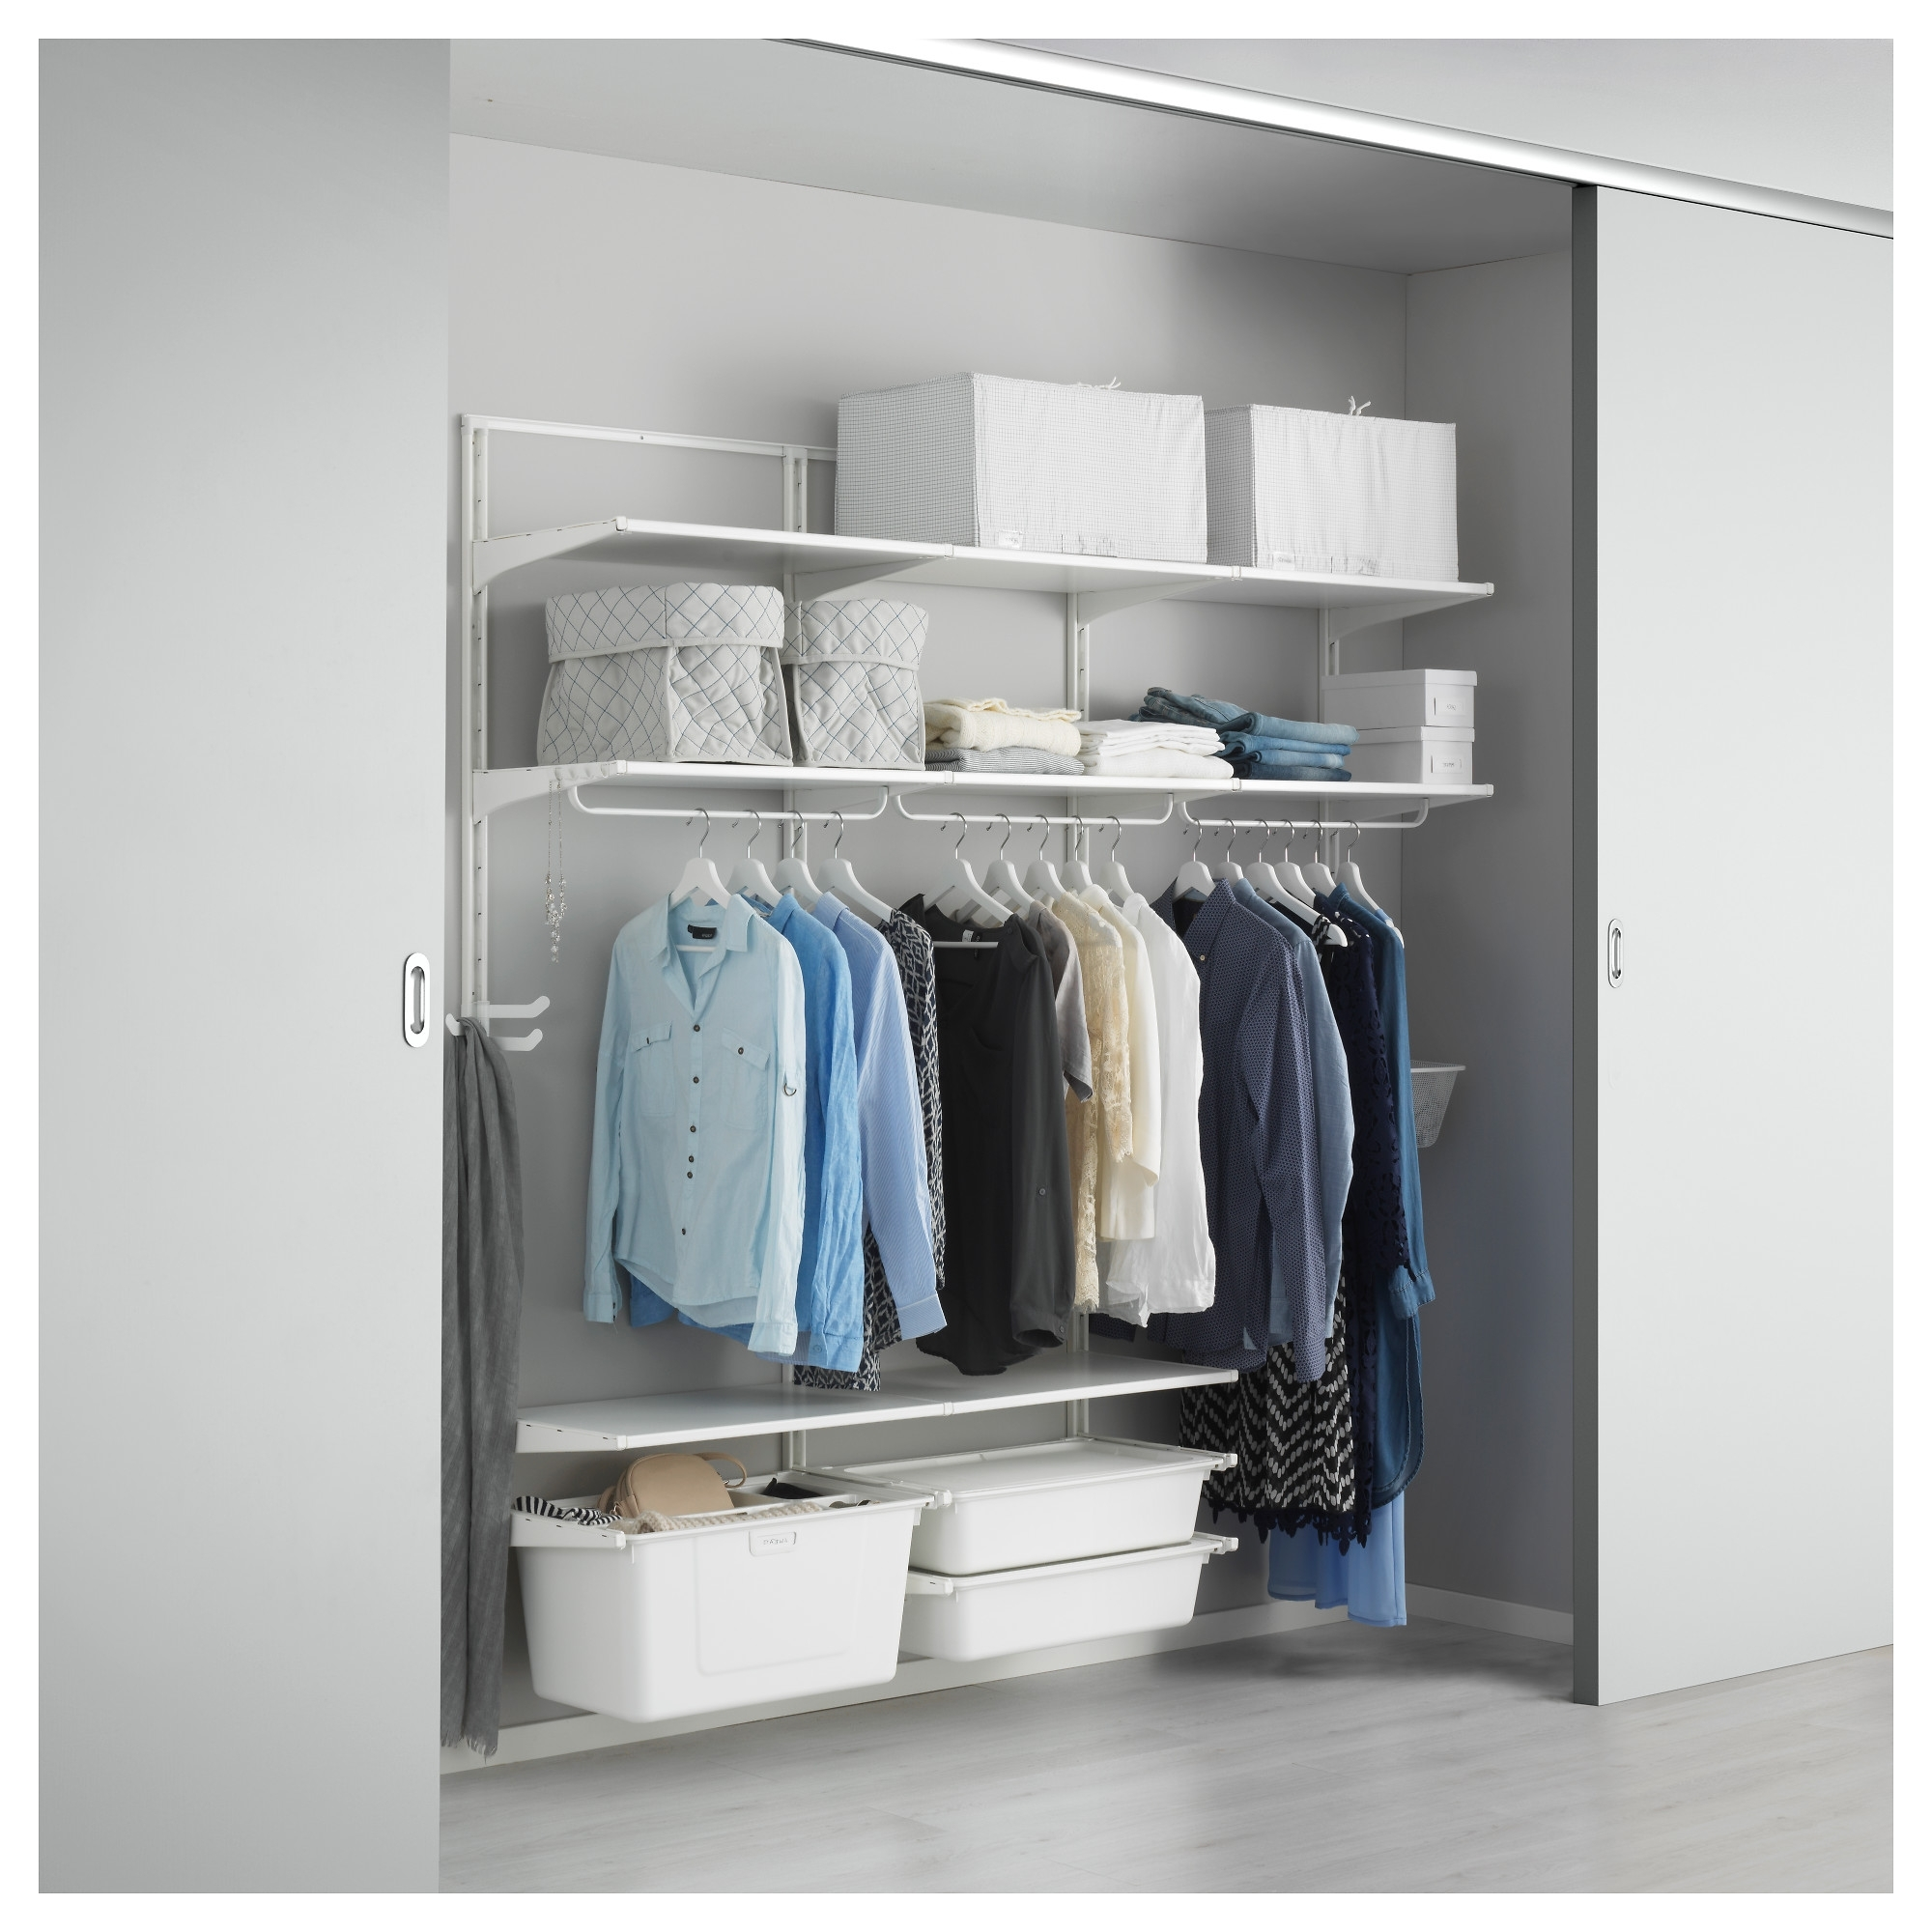 Most Recently Released Closet Storage : Lowes Garment Rack Closet Organizer Systems Wood In Mobile Wardrobes Cabinets (View 10 of 15)